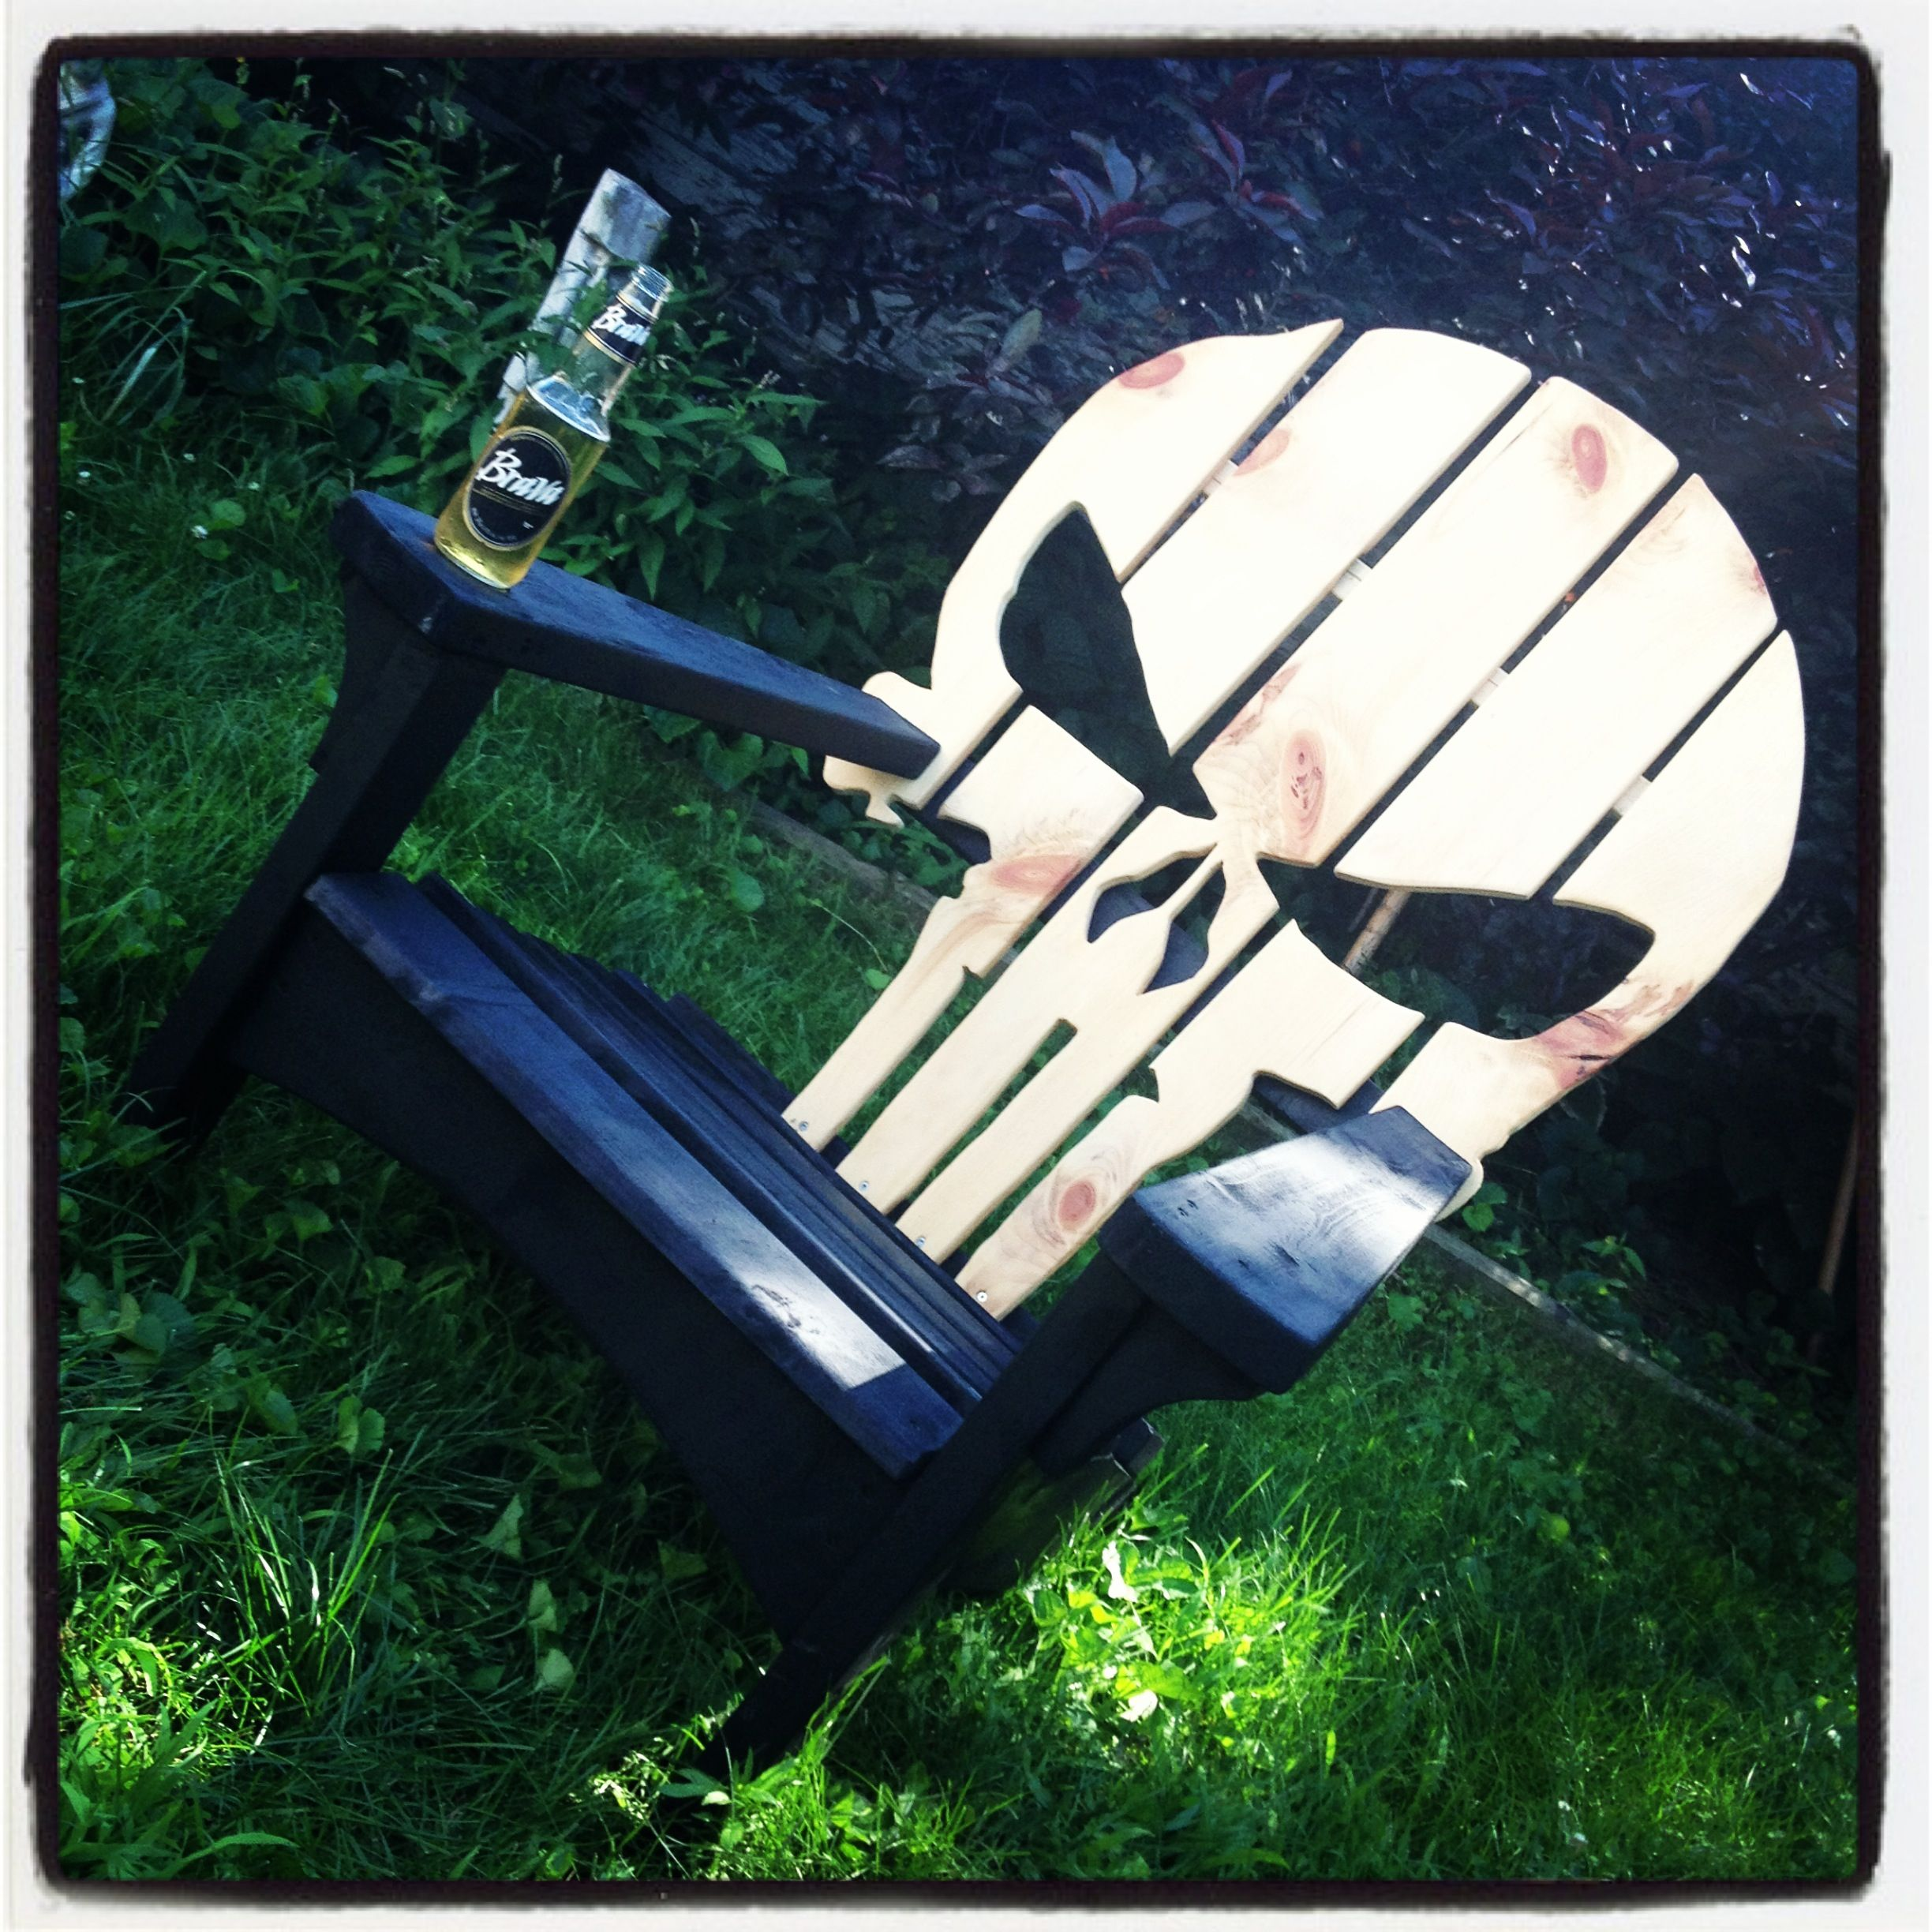 Wood Skull Lawn Chairs ~ Punisher adirondack chair chairs we have made